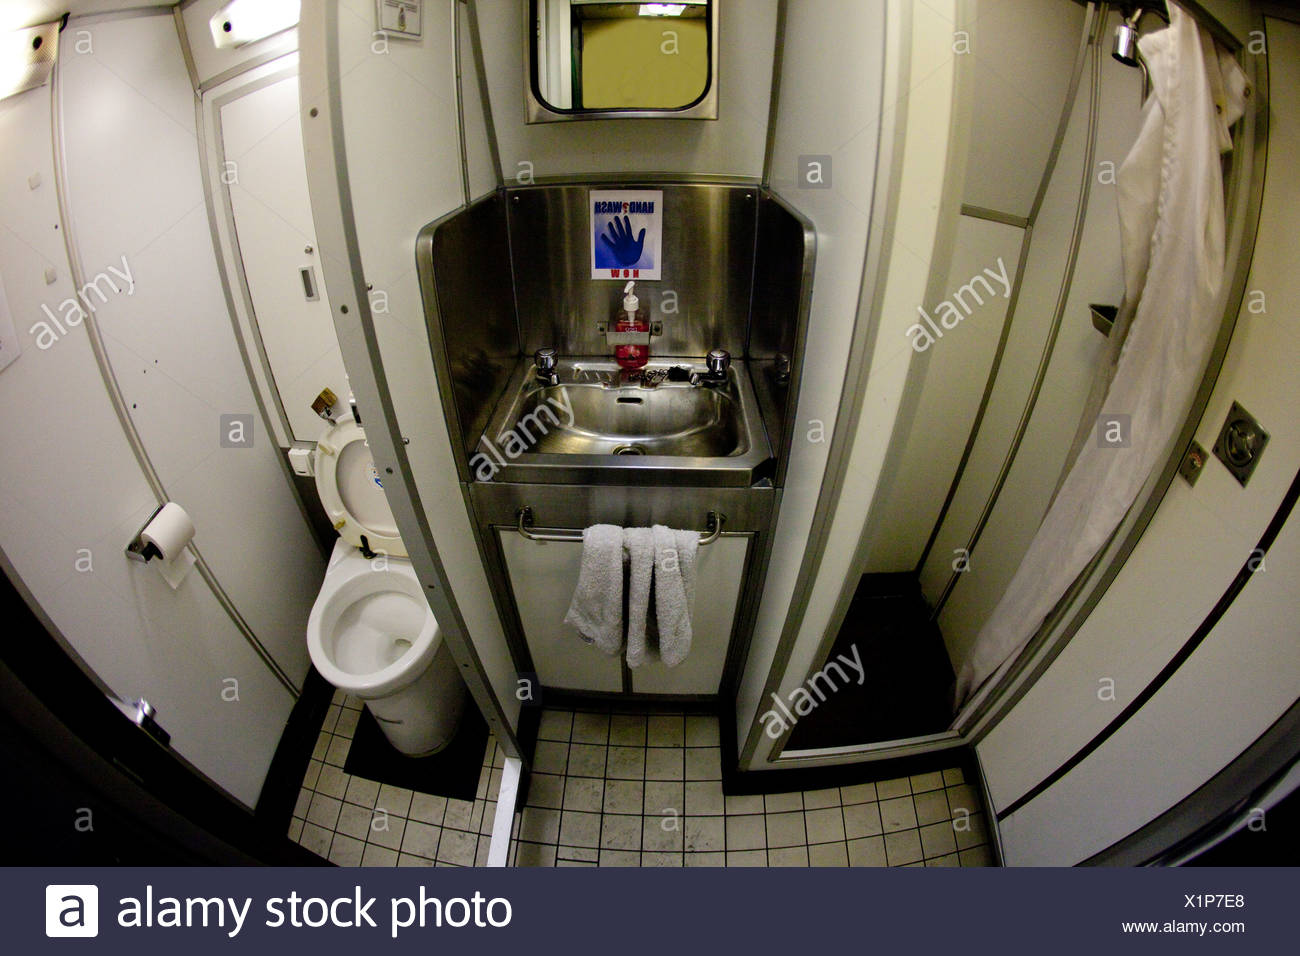 Washroom in Nuclear Submarine HMS Talent - Stock Image